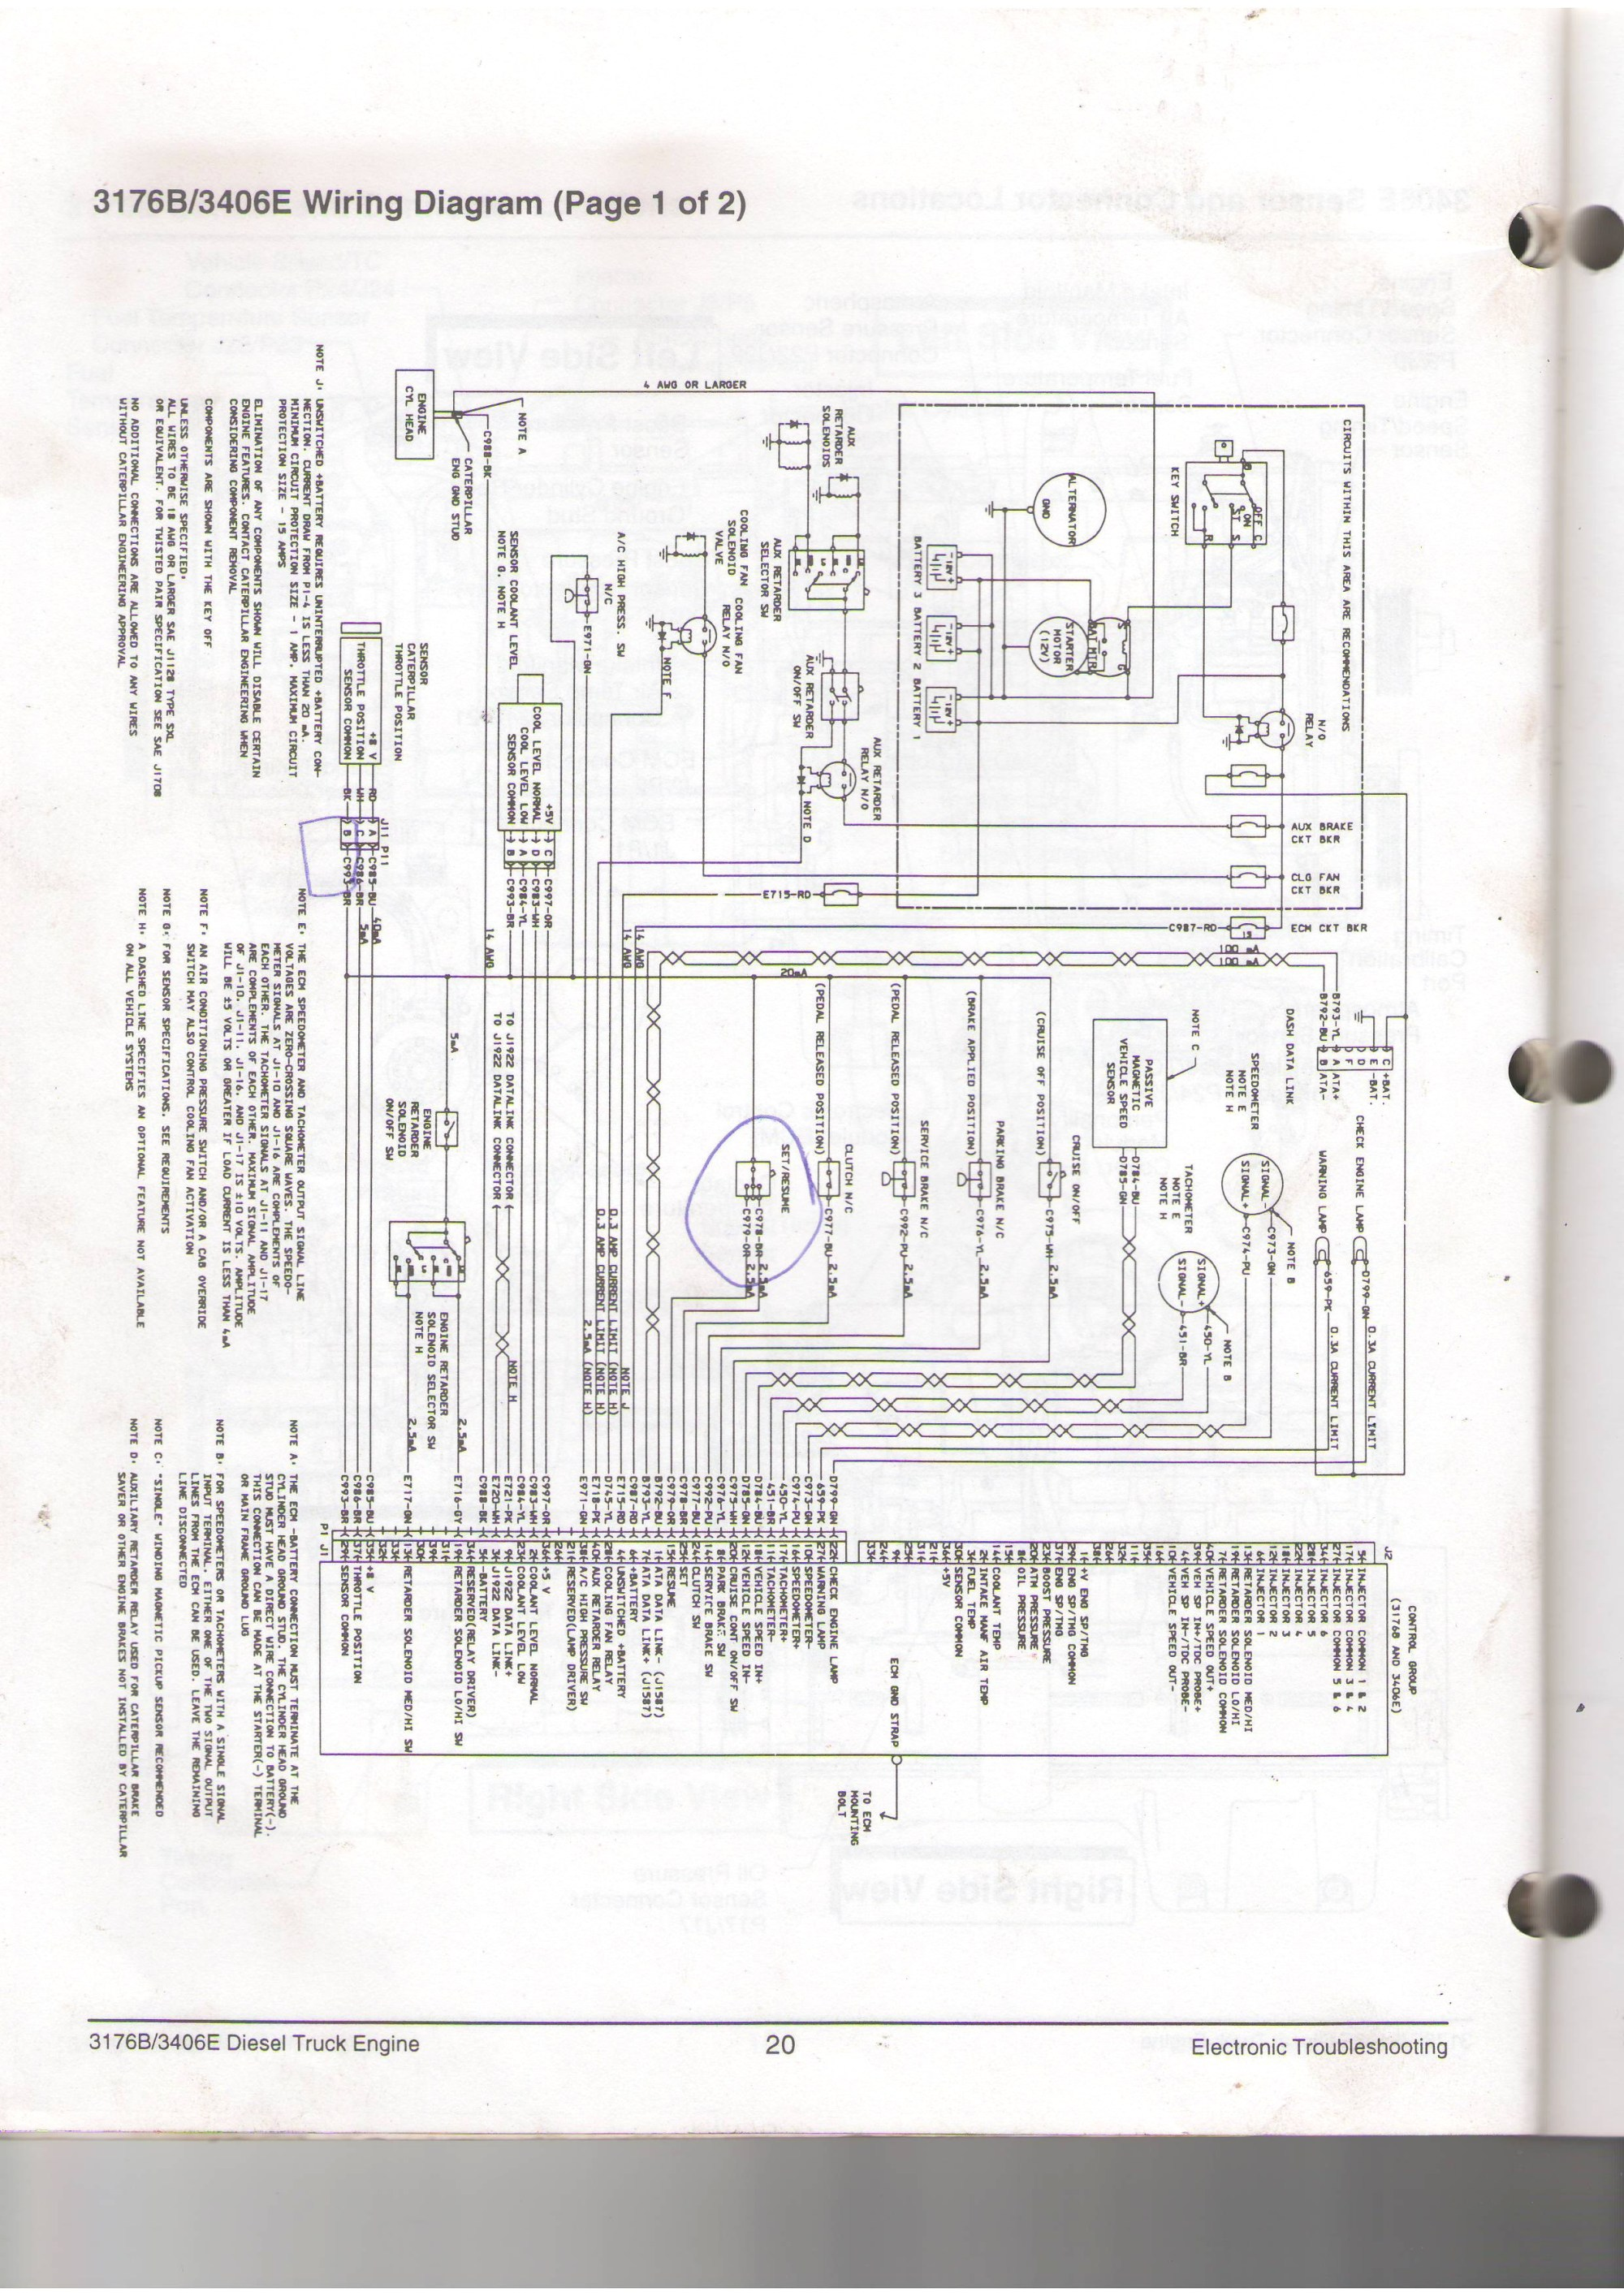 hight resolution of cat 3126 engine diagram wiring diagram page cat 3126 engine sensor diagram